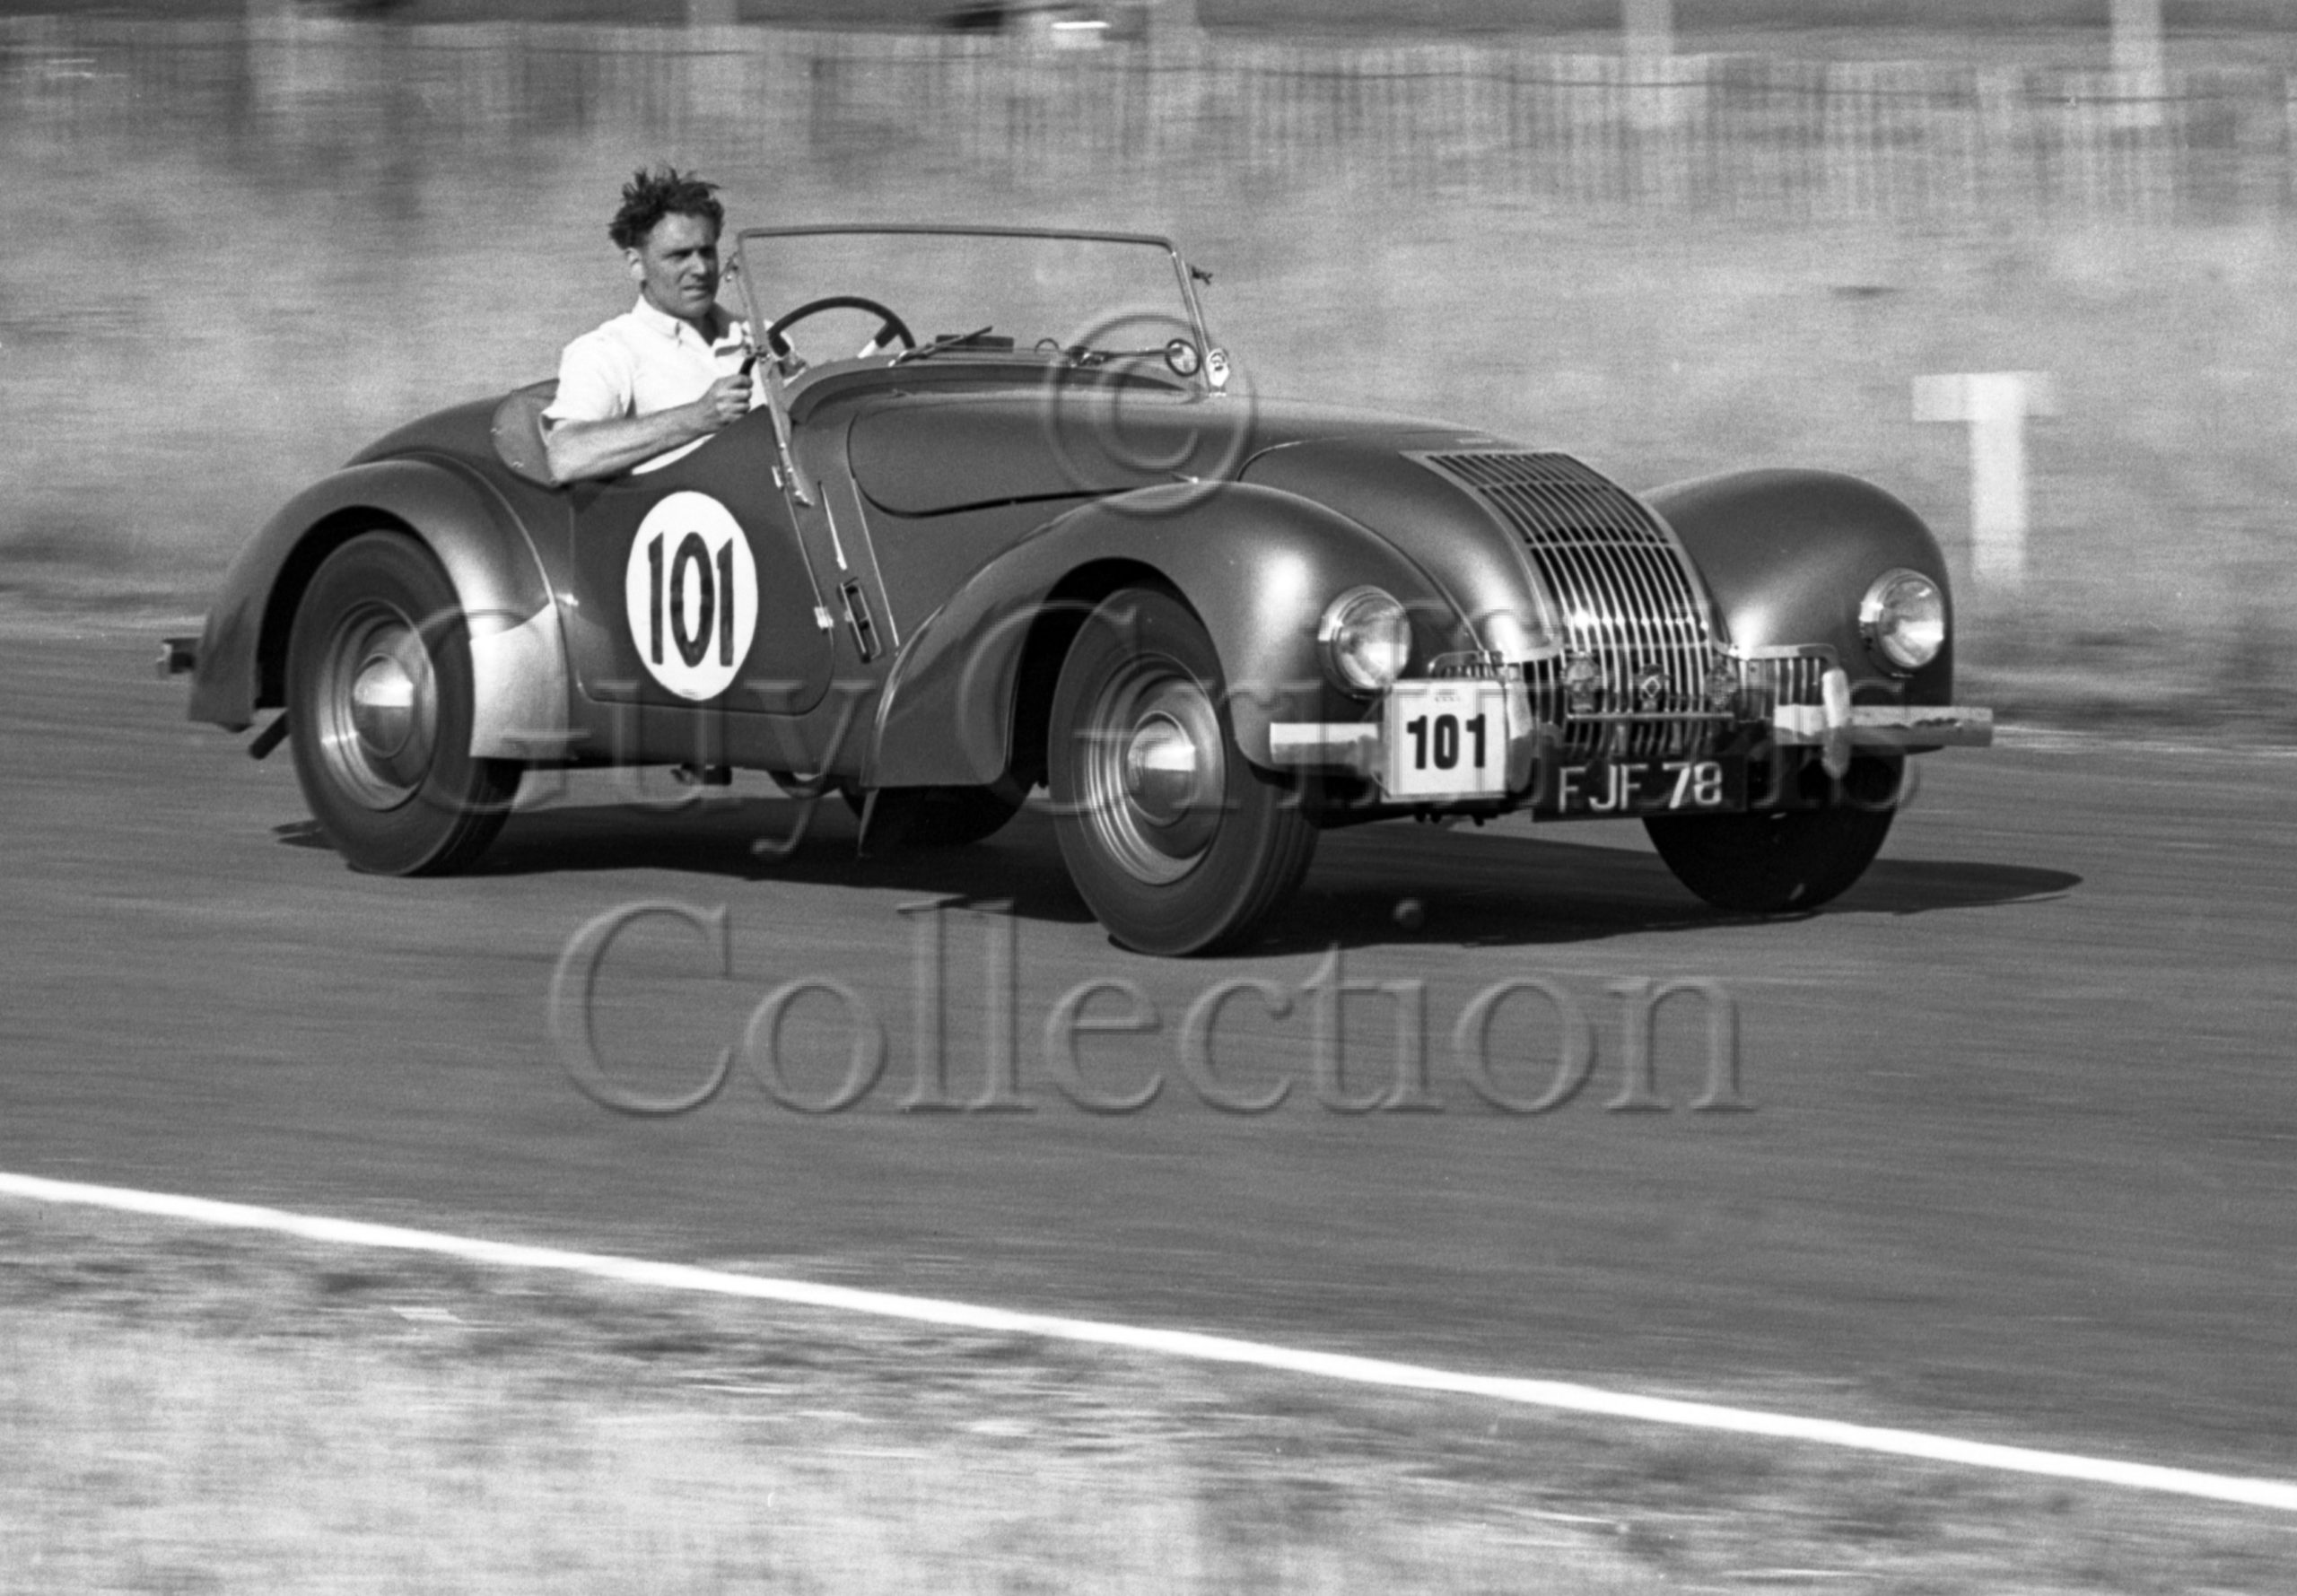 20-545–C-N-Randal–Allard–Goodwood–13-08-1949.jpg - Guy Griffiths Collection